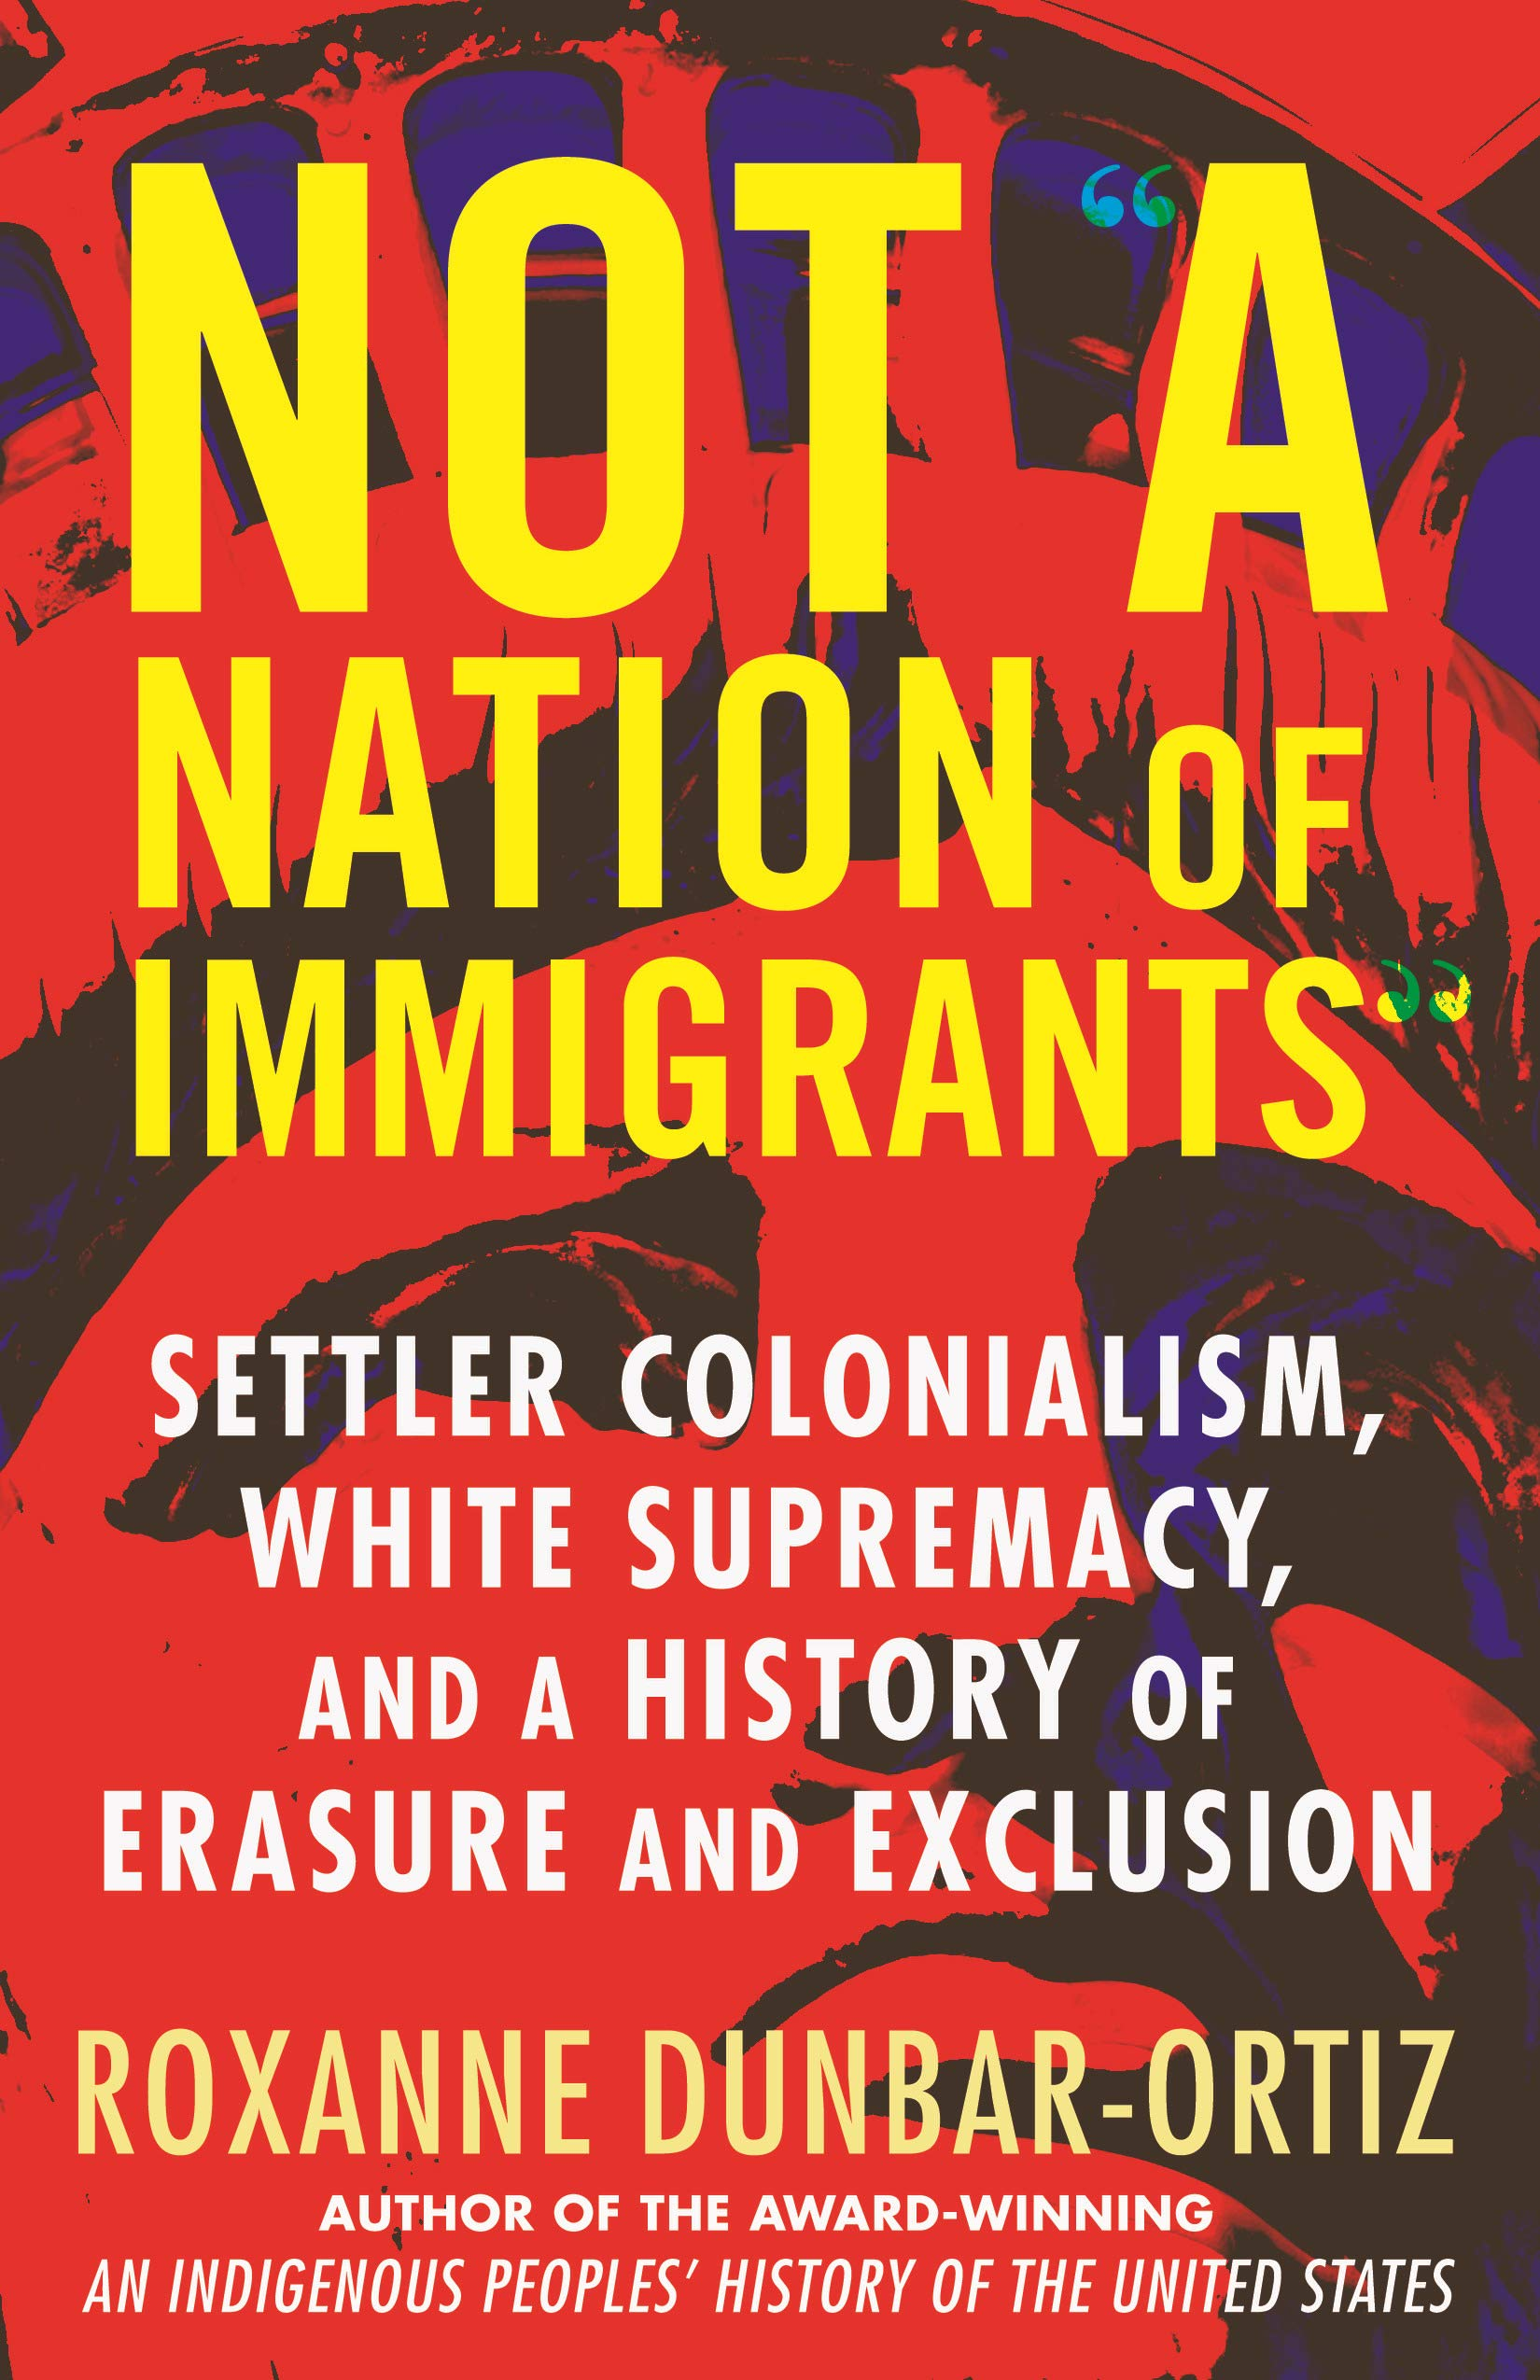 """NOT """"A NATION OF IMMIGRANTS"""" SETTLER COLONIALISM, WHITE SUPREMACY AND A HISTORY OF ERASURE AND EXCLUSION"""